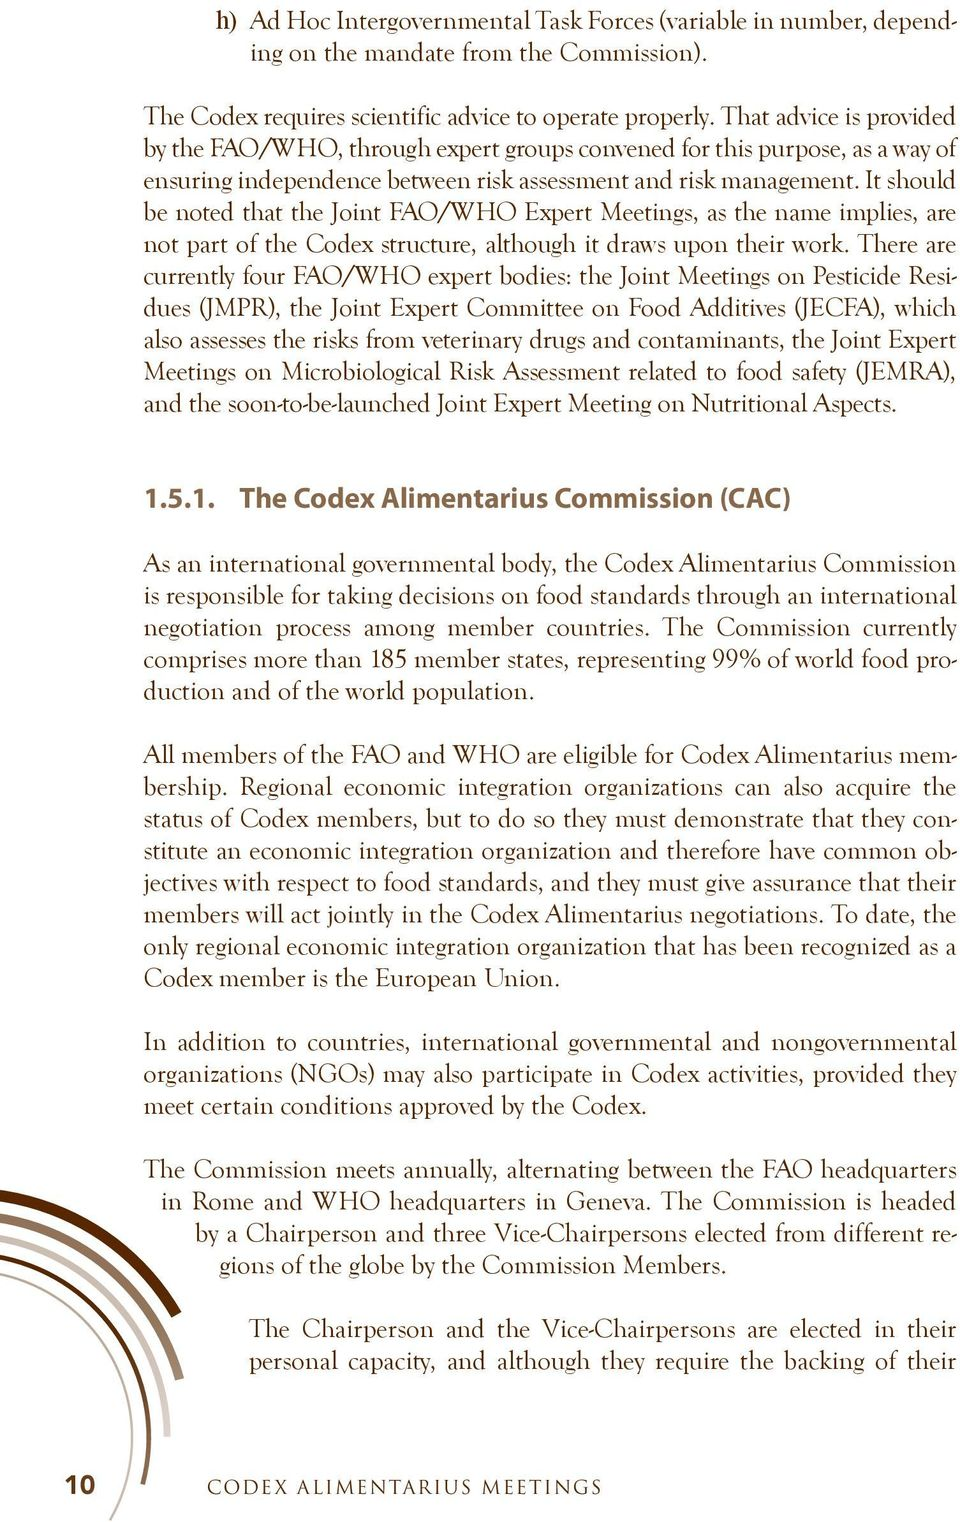 It should be noted that the Joint FAO/WHO Expert Meetings, as the name implies, are not part of the Codex structure, although it draws upon their work.